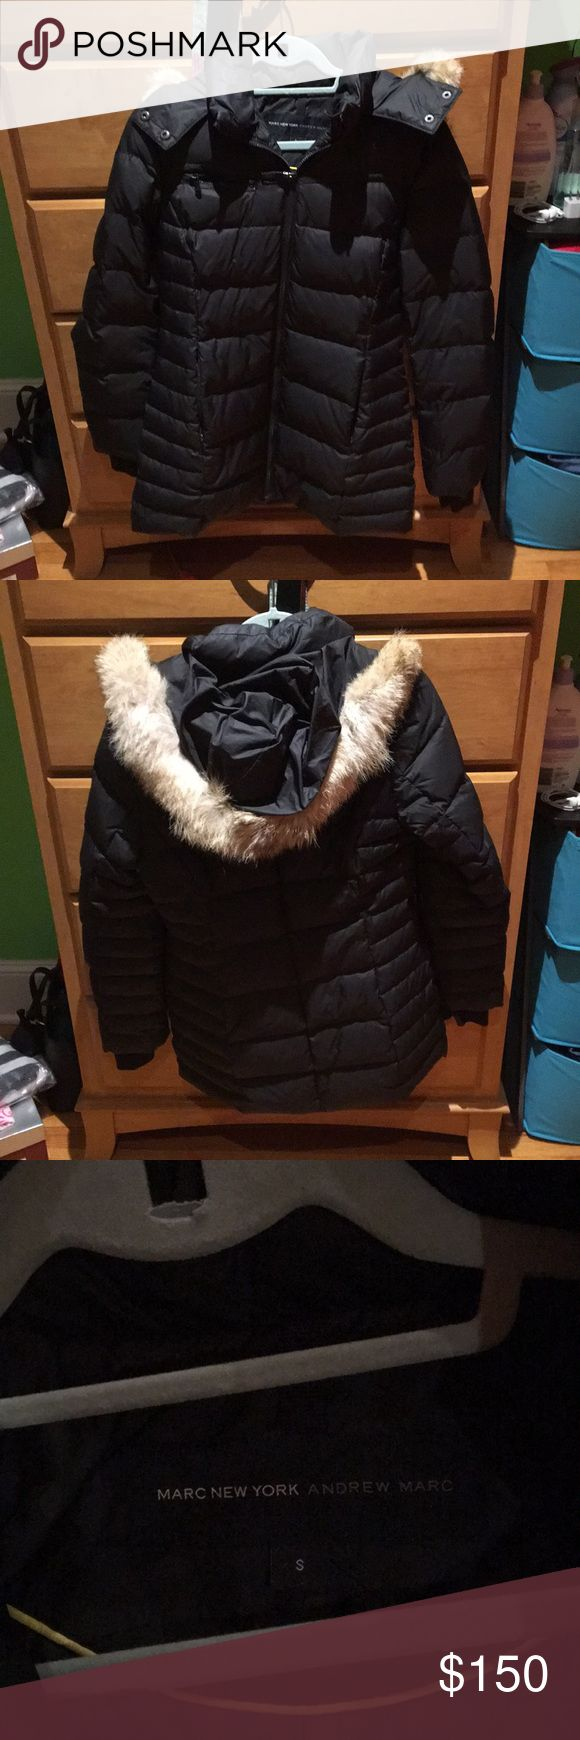 Andrew Marc Marc New York Fur Down Coat Andrew Marc Marc New York Fur Down Coat -removable hood -BRAND NEW condition -black Andrew Marc Jackets & Coats